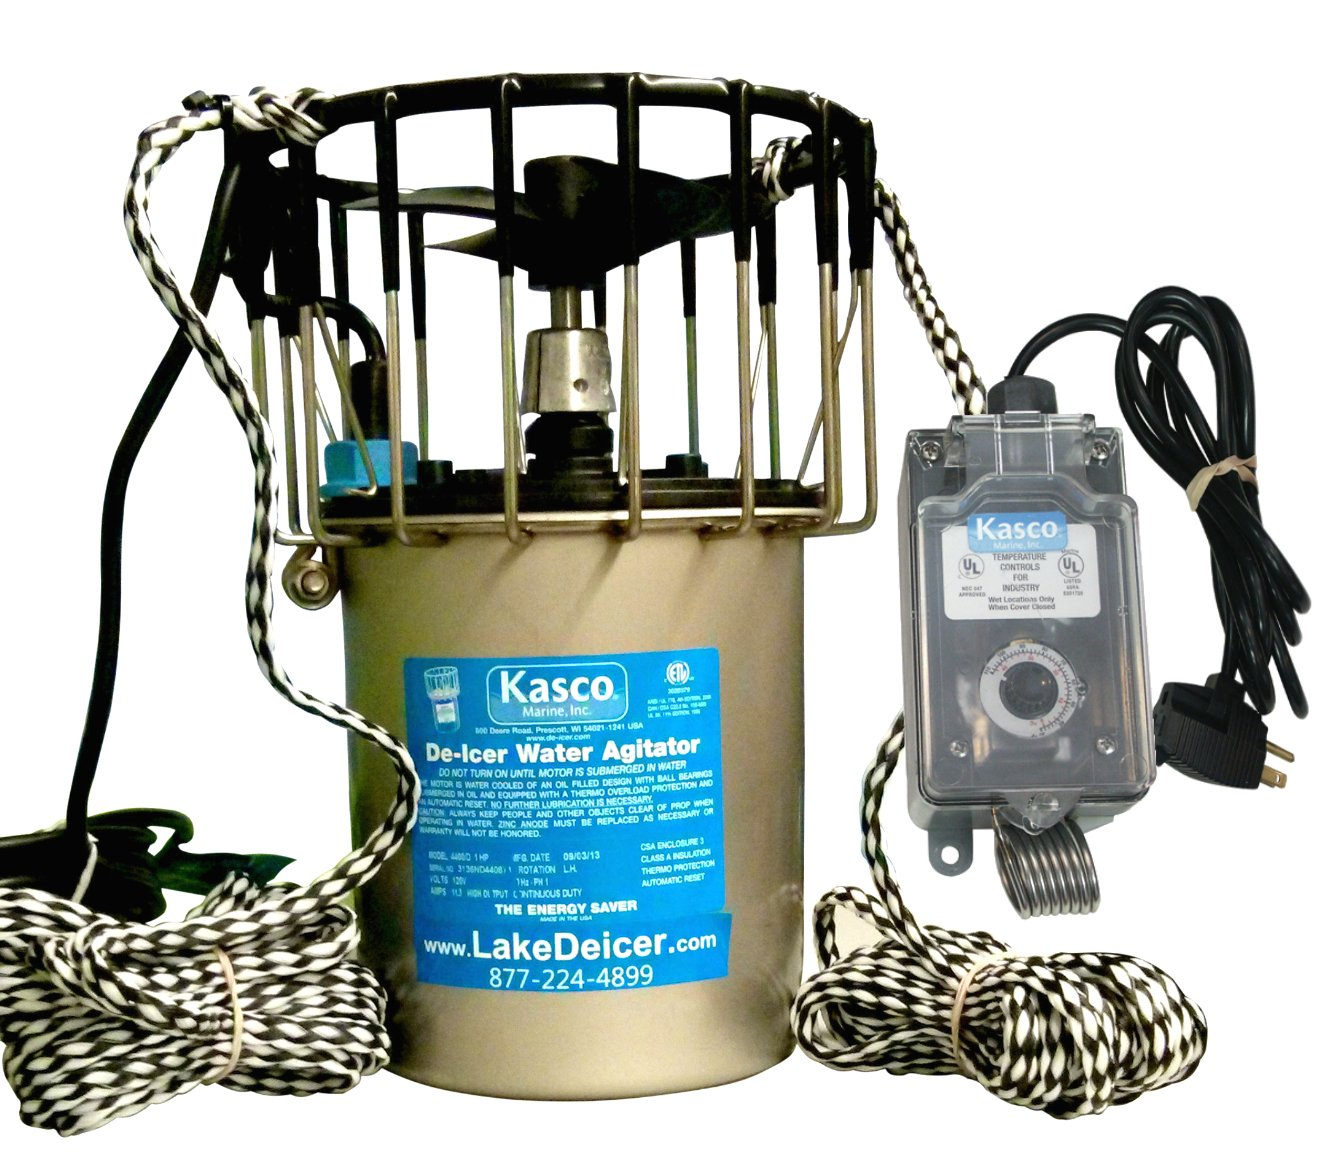 Kasco Marine Lake & Pond De-icer 1hp - 120v Deicer 25ft Power Cord & Ropes C-10 Timer Thermostat Controller by Kasco Marine